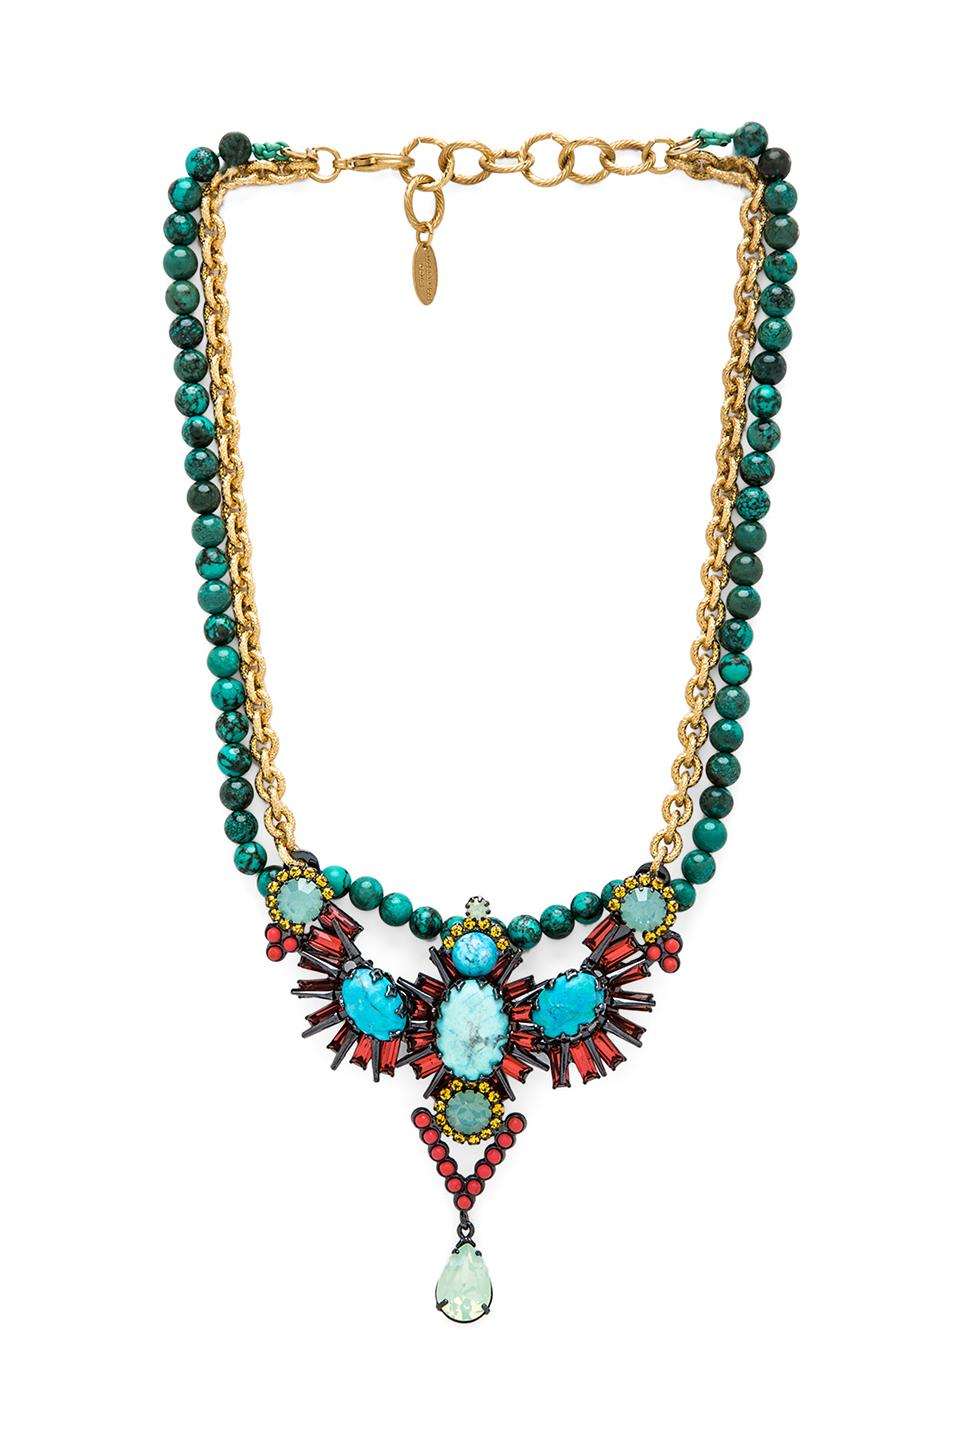 Elizabeth Cole Necklace in Turquoise